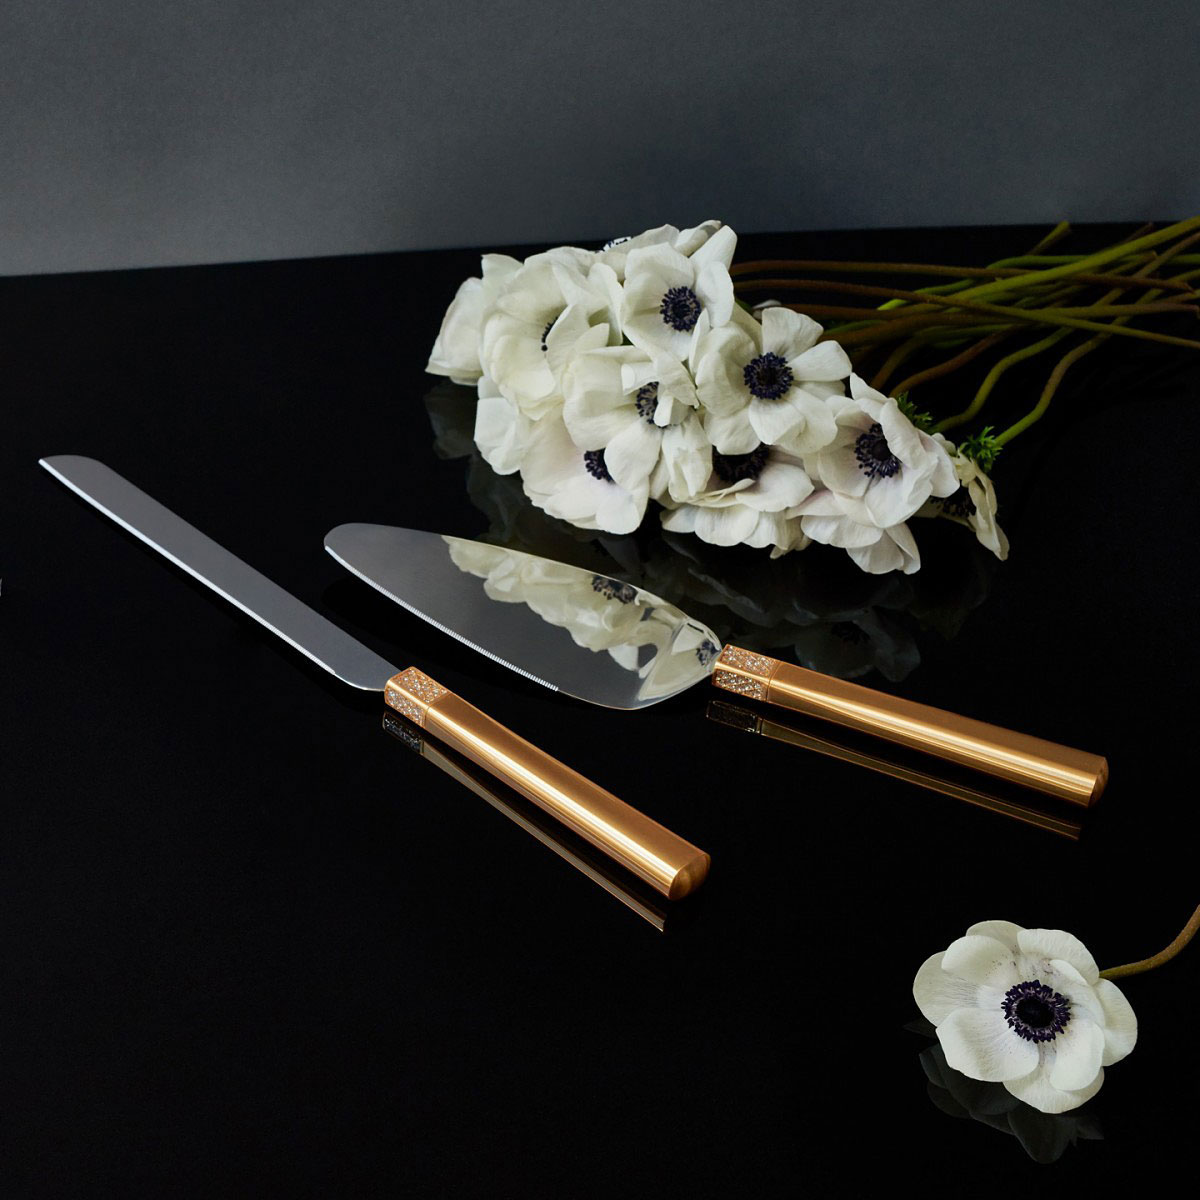 Waterford Lismore Diamond Gold Cake Knife and Server